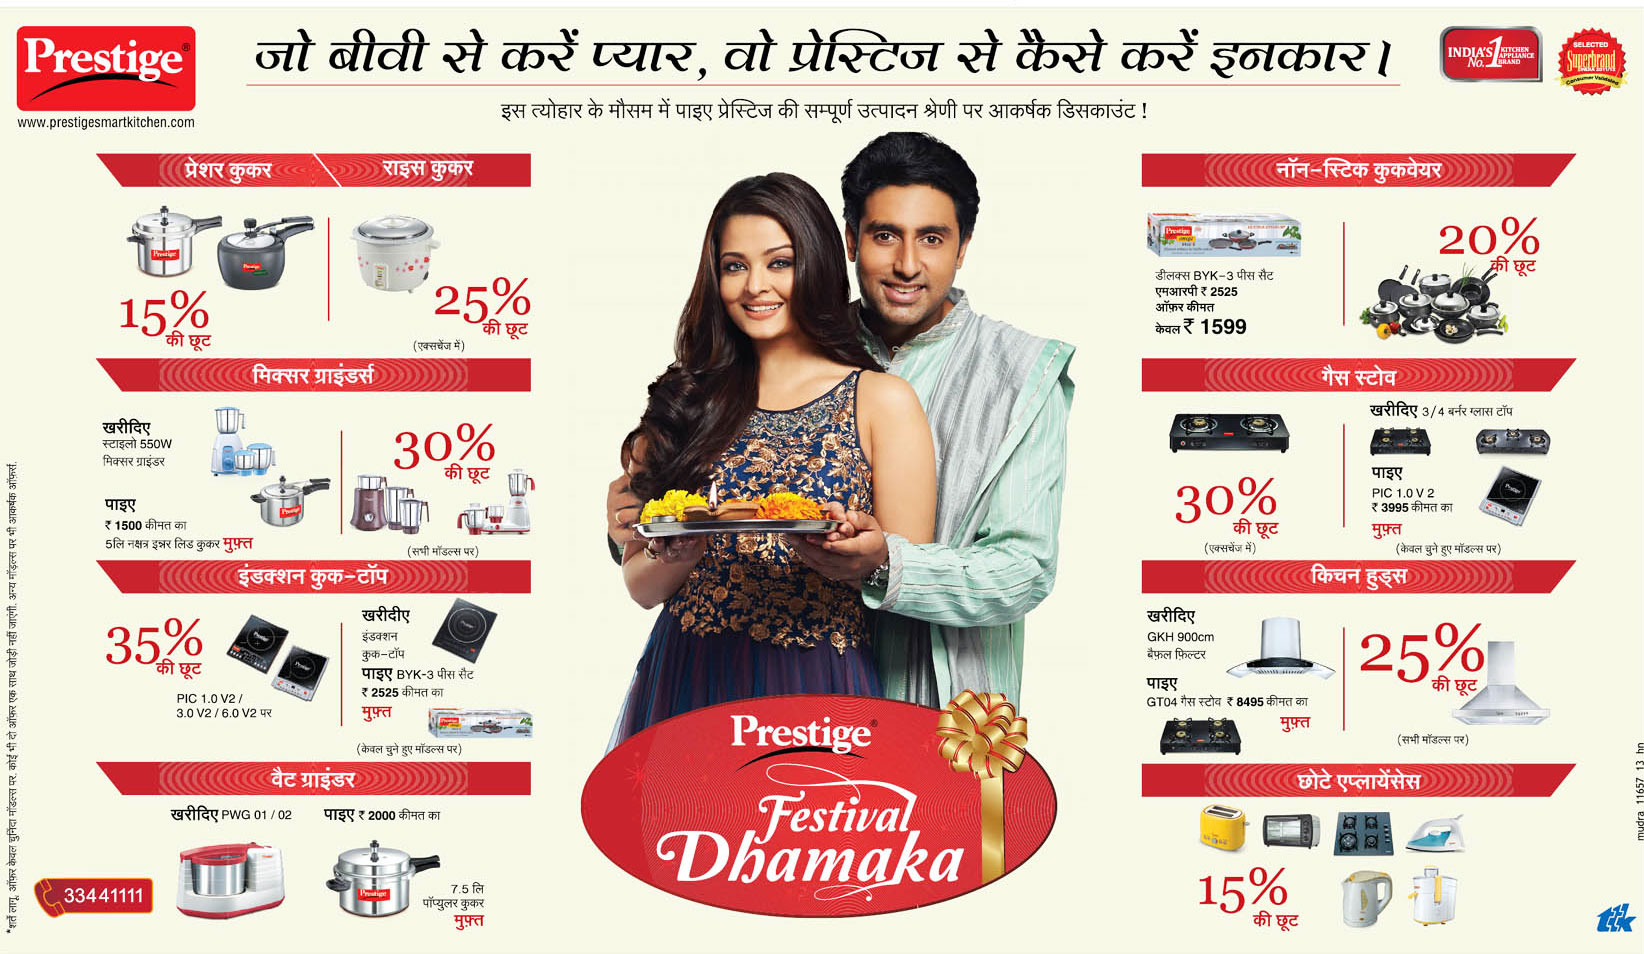 Prestige Kitchenware Offering Festival Discounts of upto 35% | SAGMart